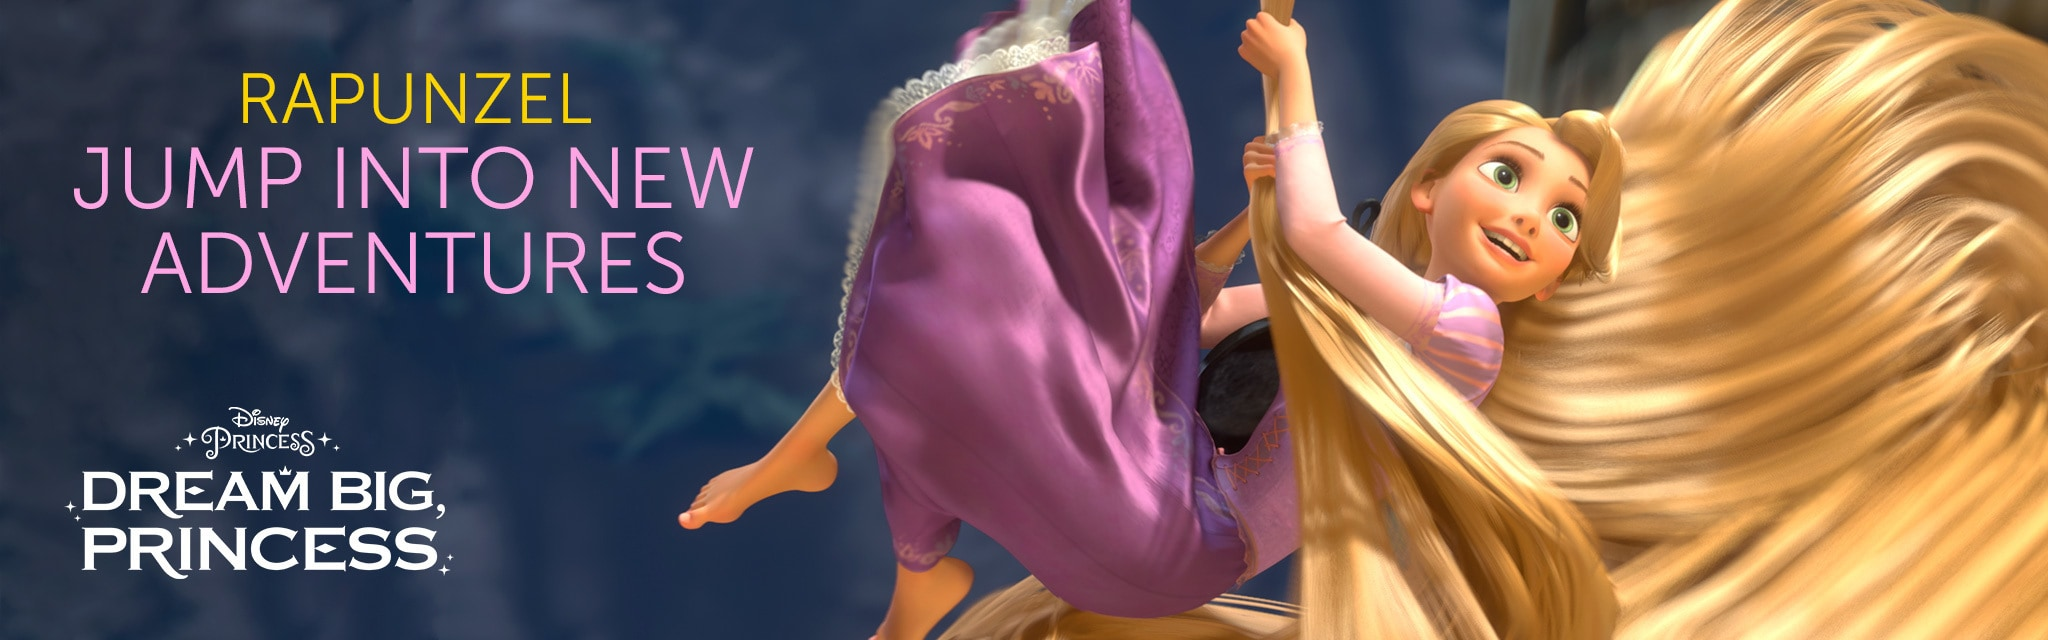 Rapunzel - Jump Into New Adventures